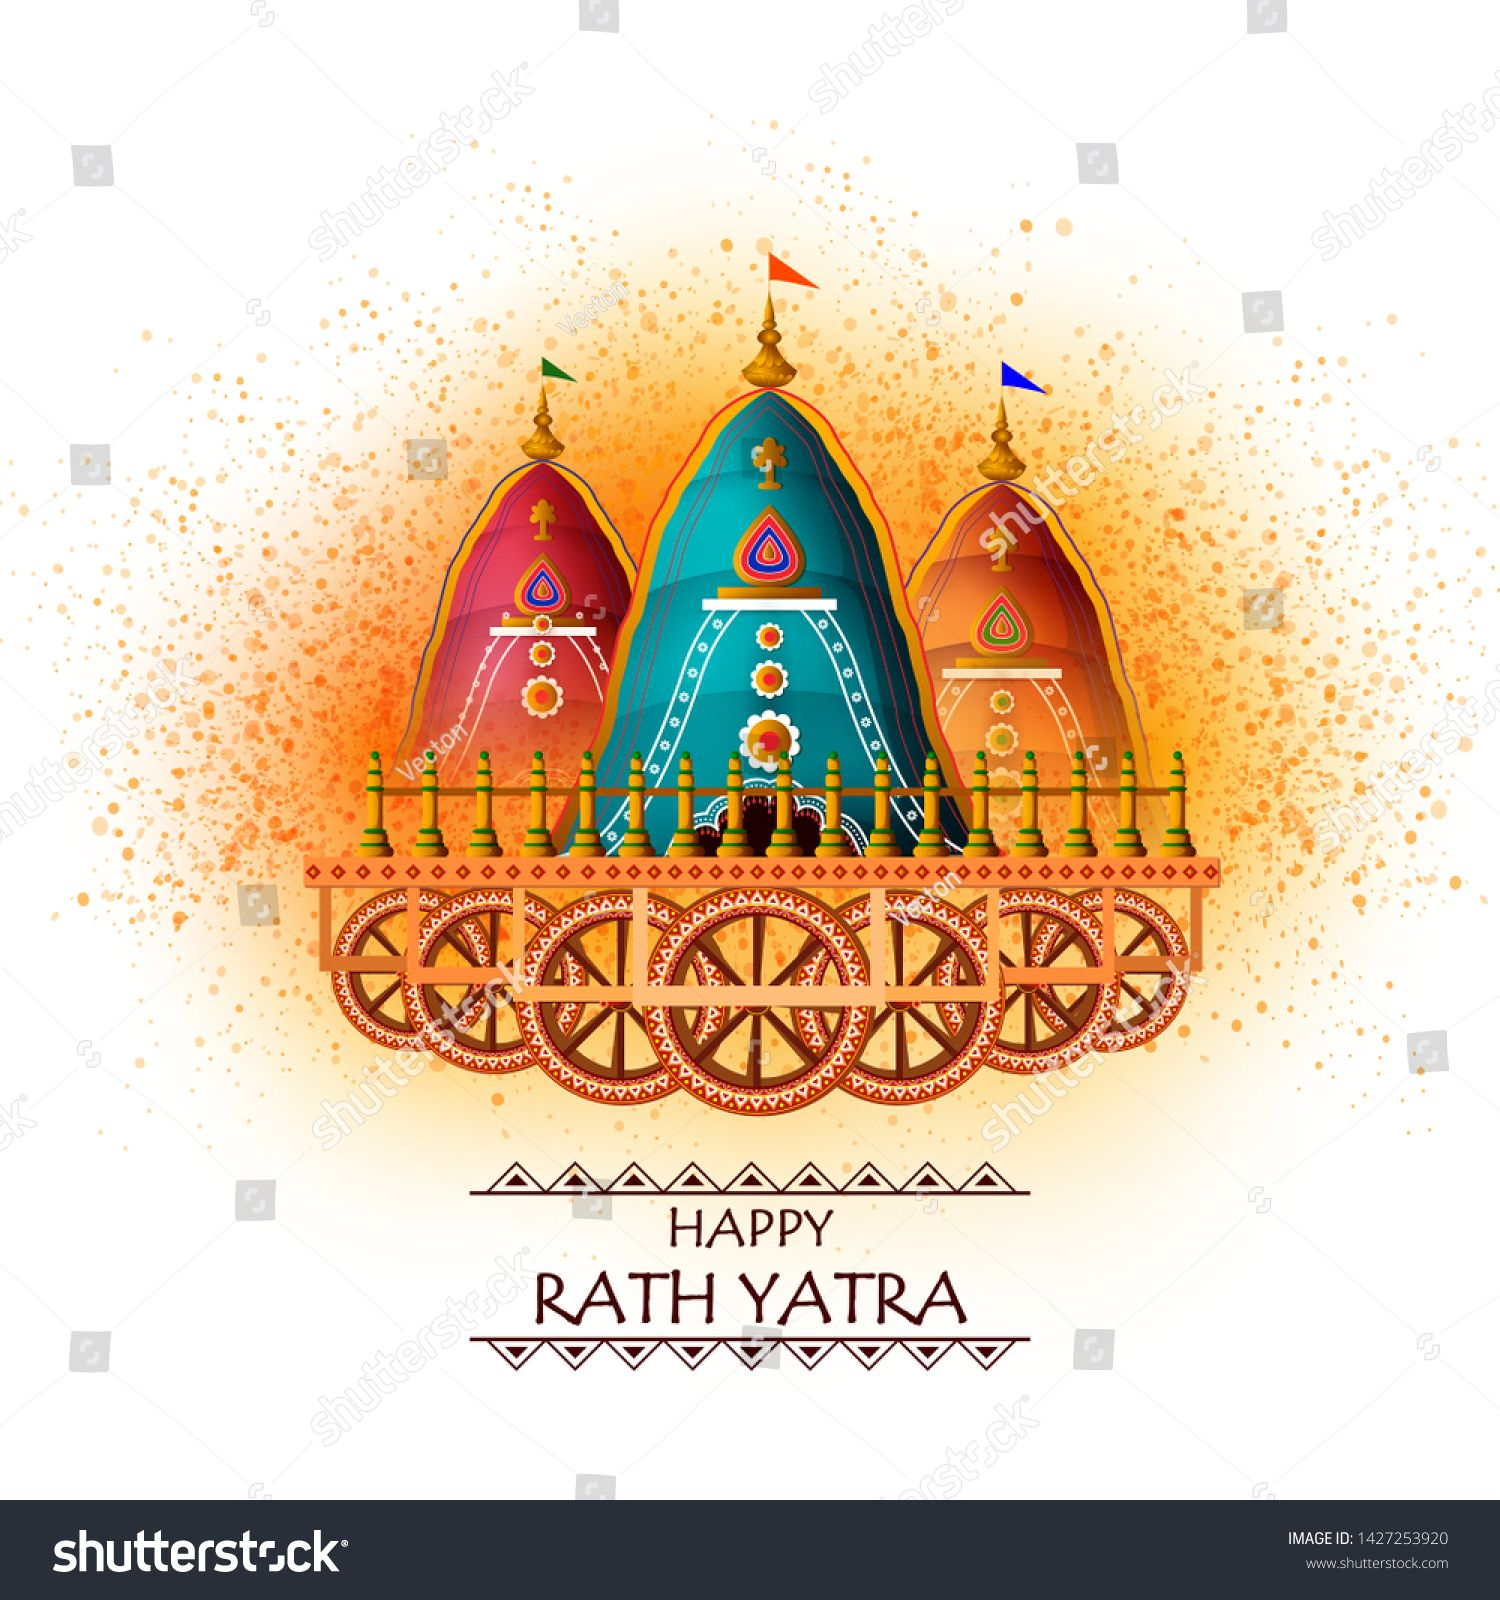 Happy Rath Yatra Holiday Background Celebration For Lord Jagannath